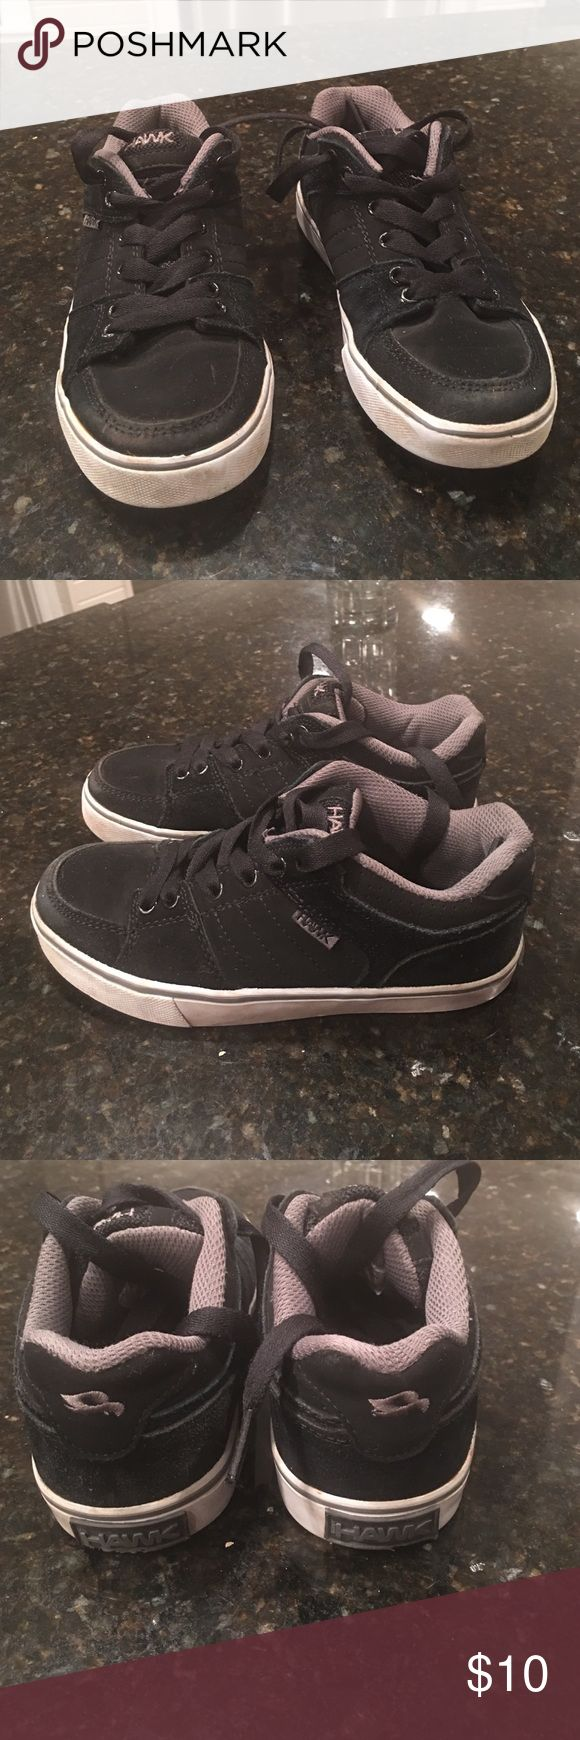 Boys size 13 m tennis shoes Used but good condition upper leather/man made material Tony Hawk Shoes Sneakers